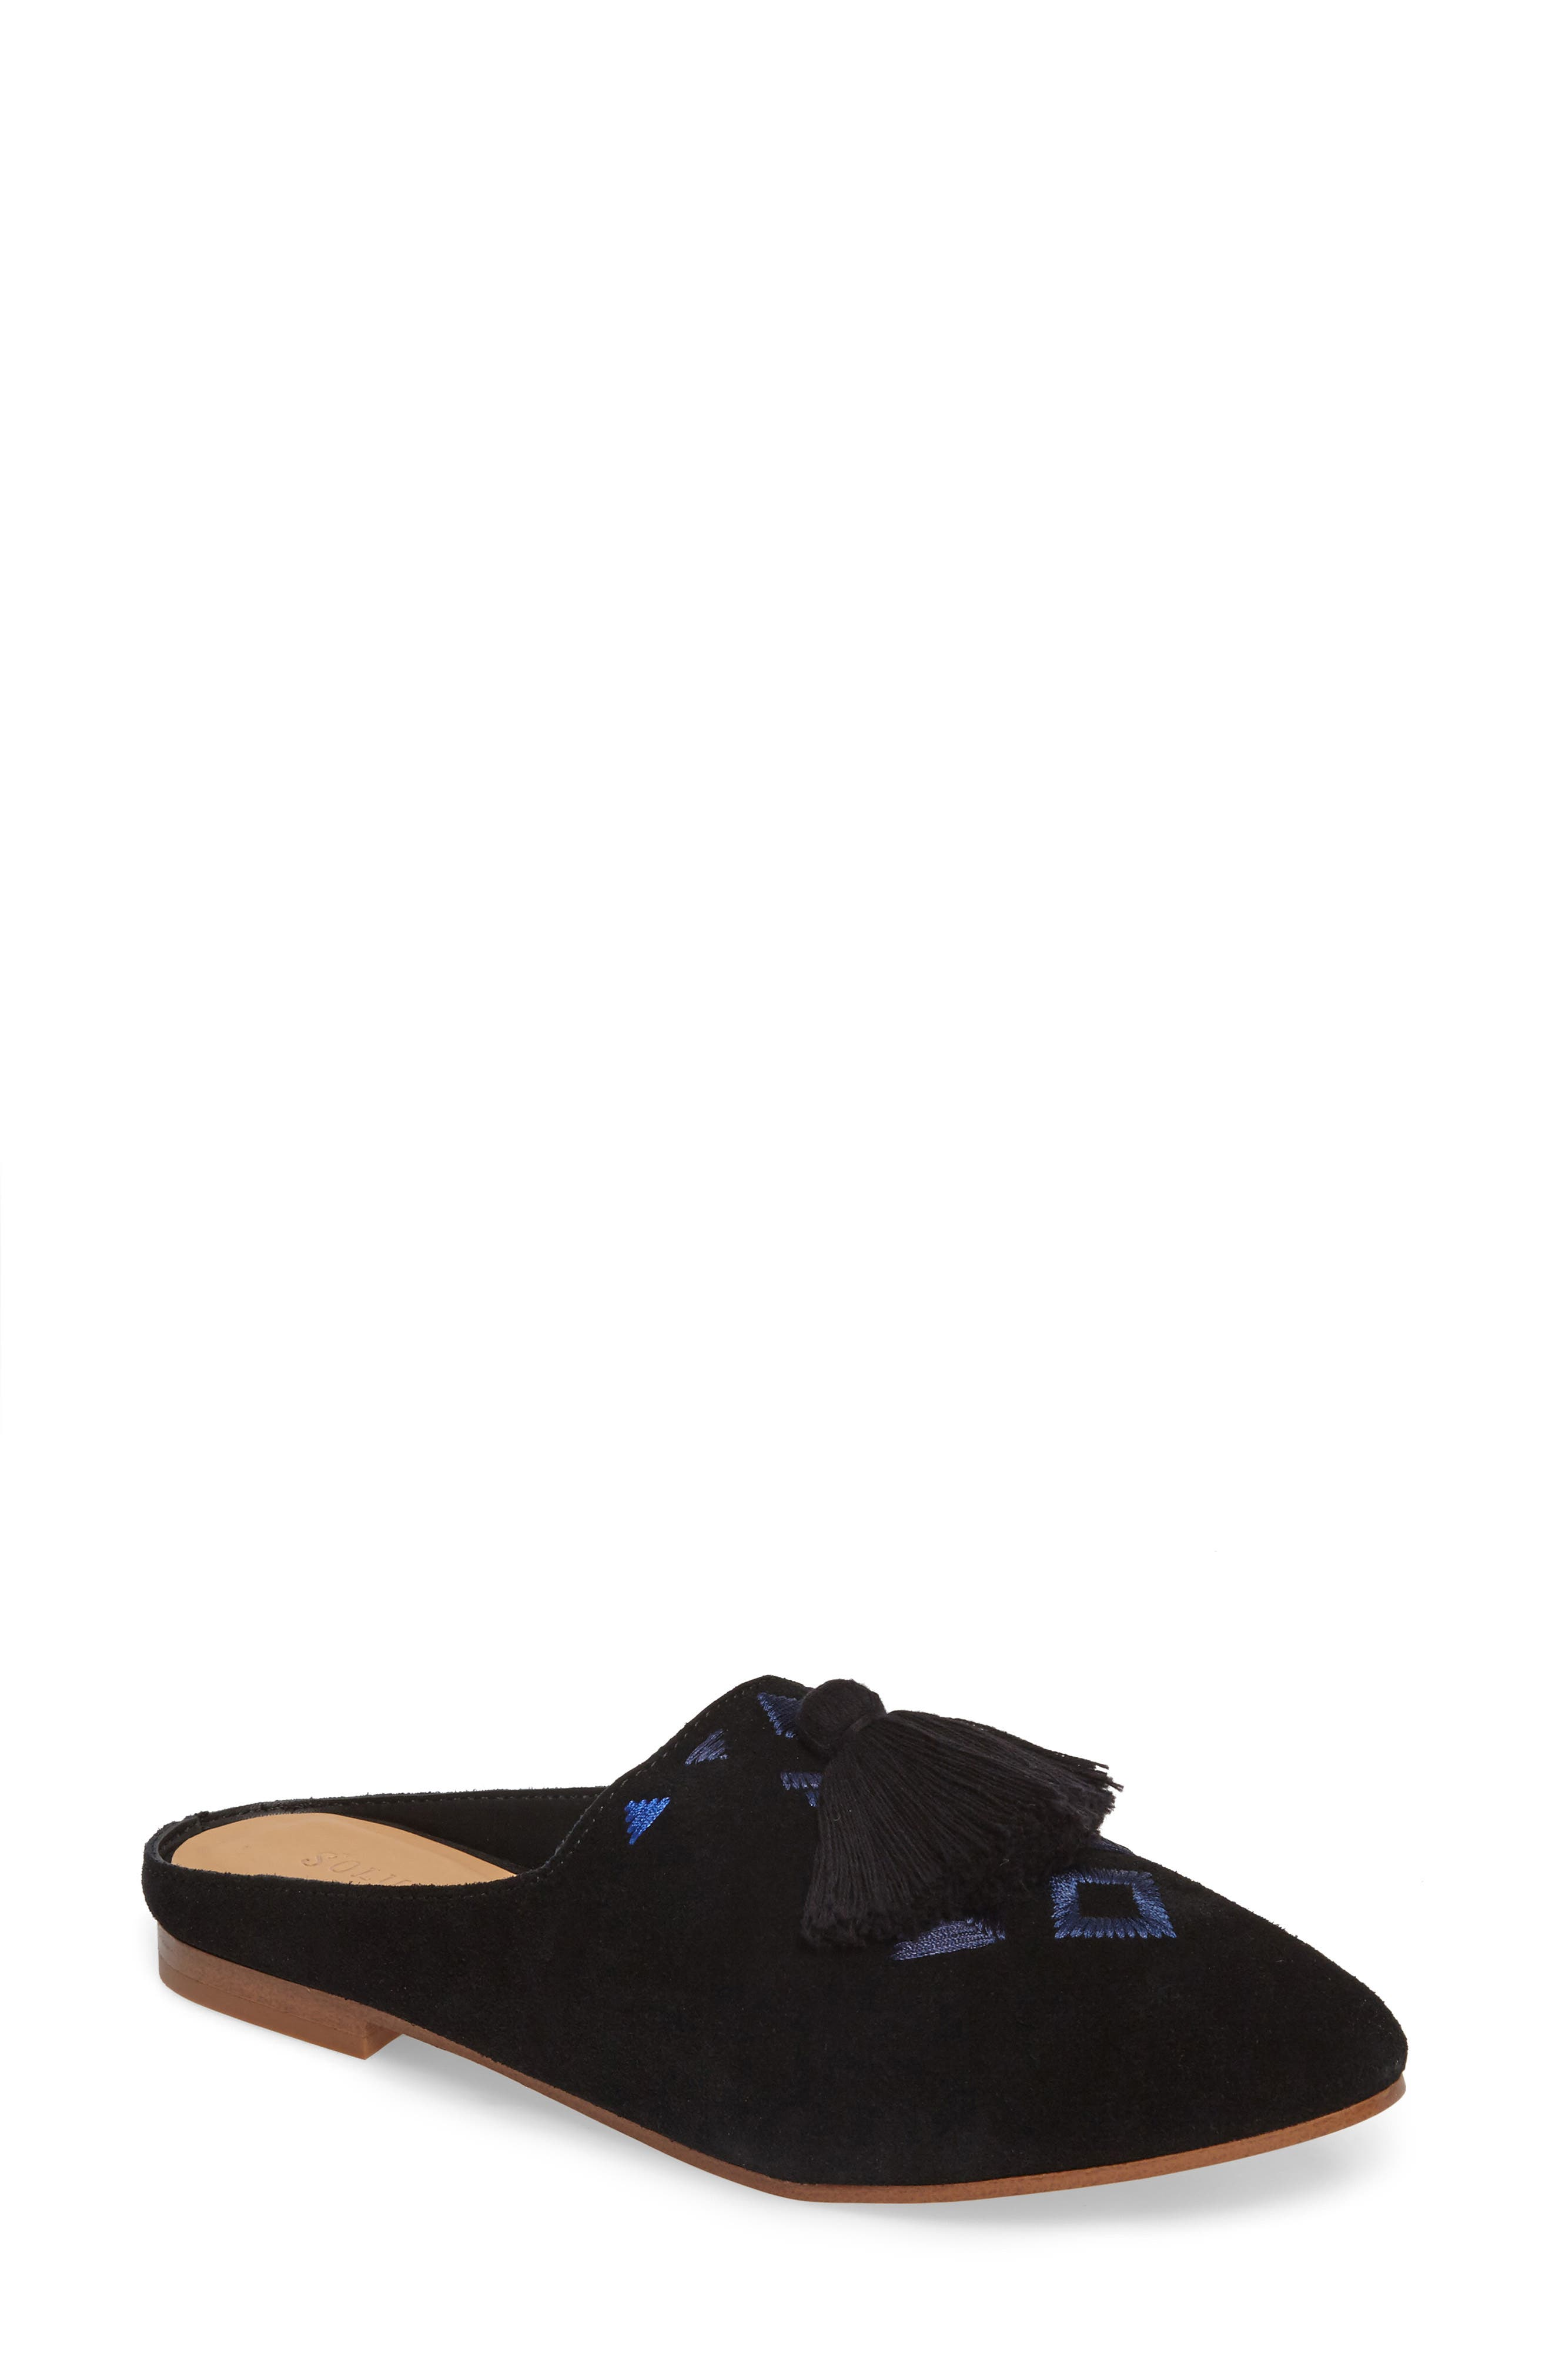 Main Image - Soludos Palazzo Loafer Mule (Women)